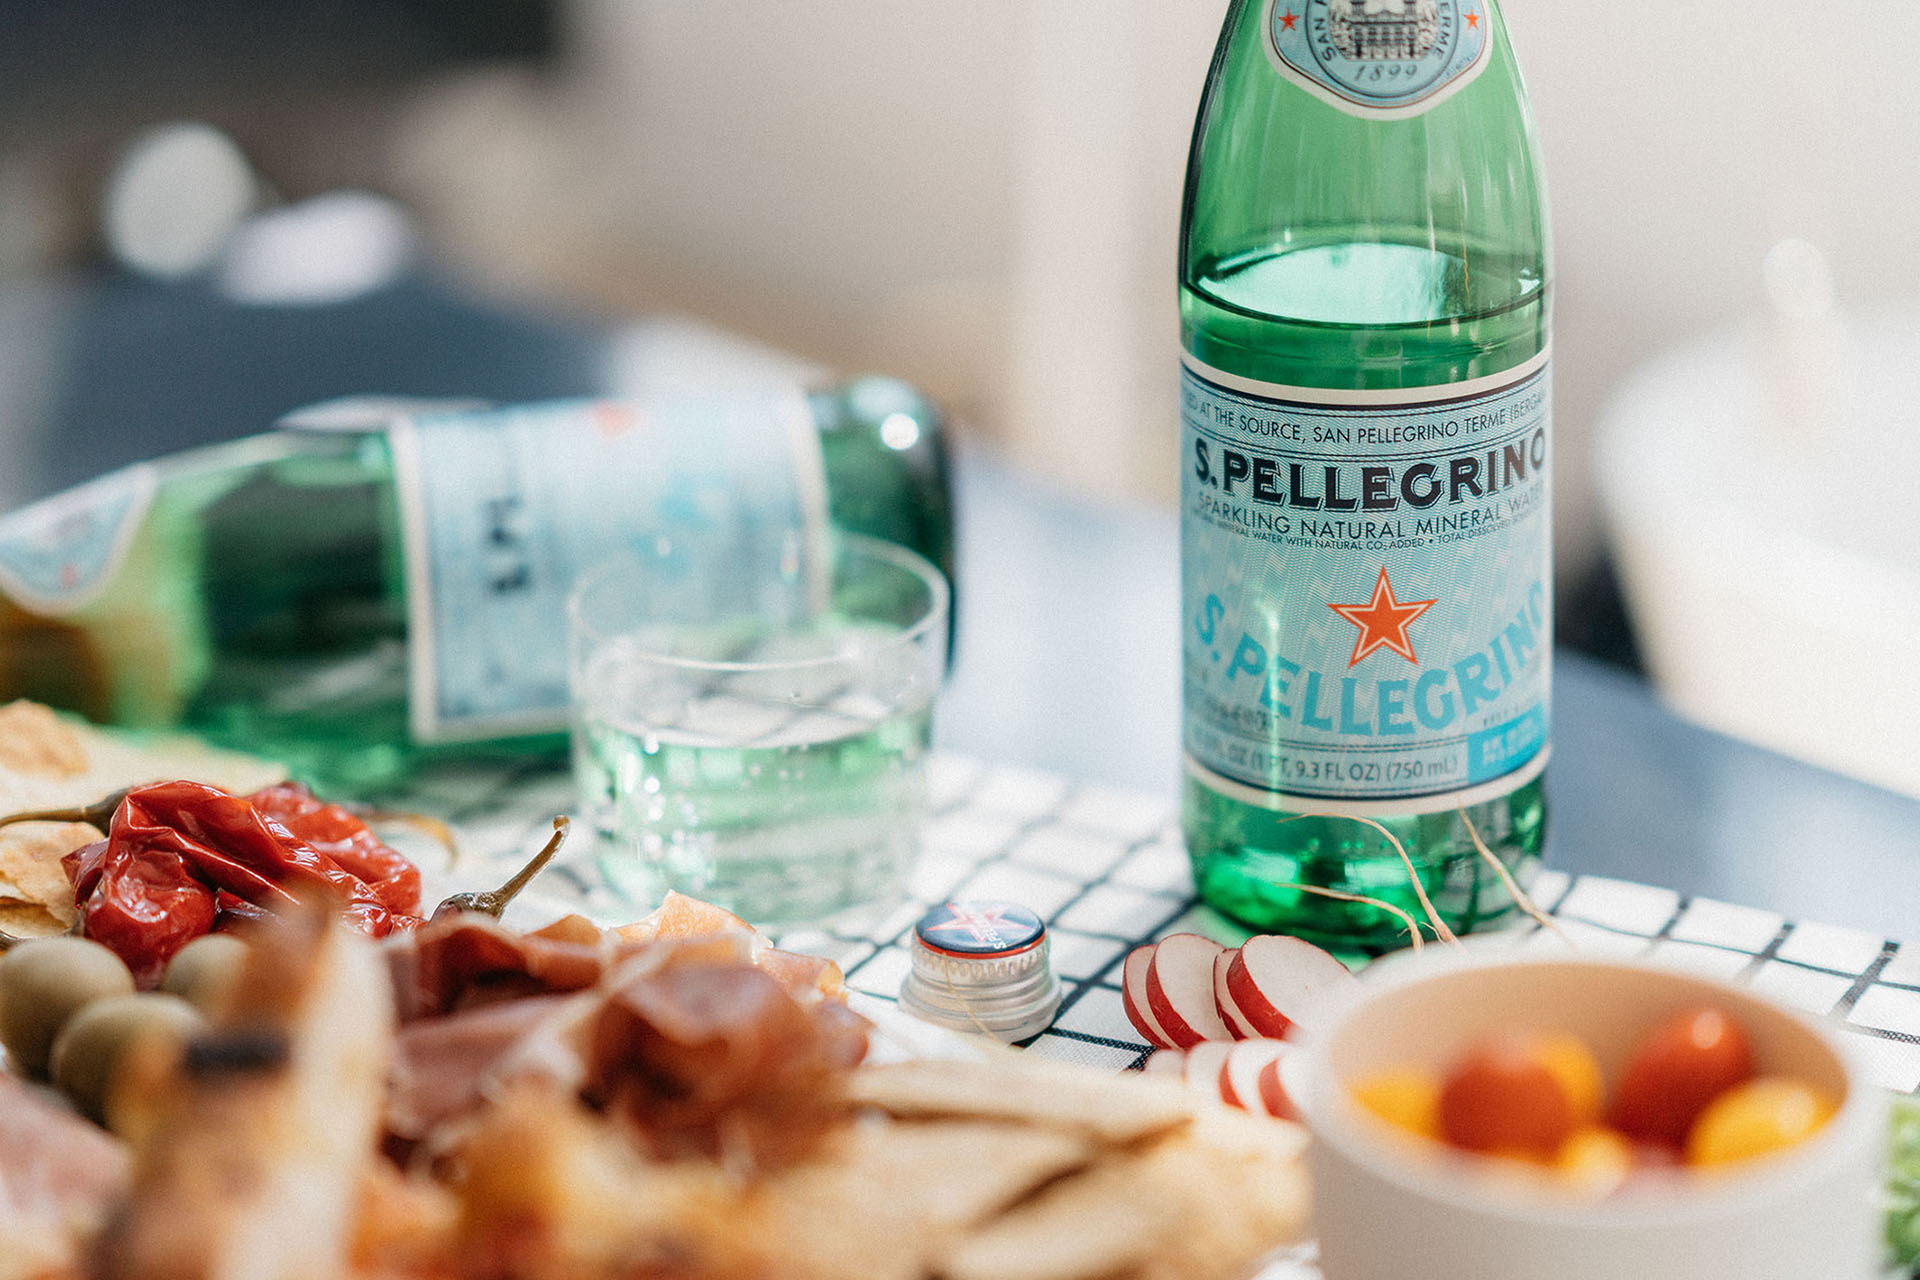 S.Pellegrino Enhance Your Moment